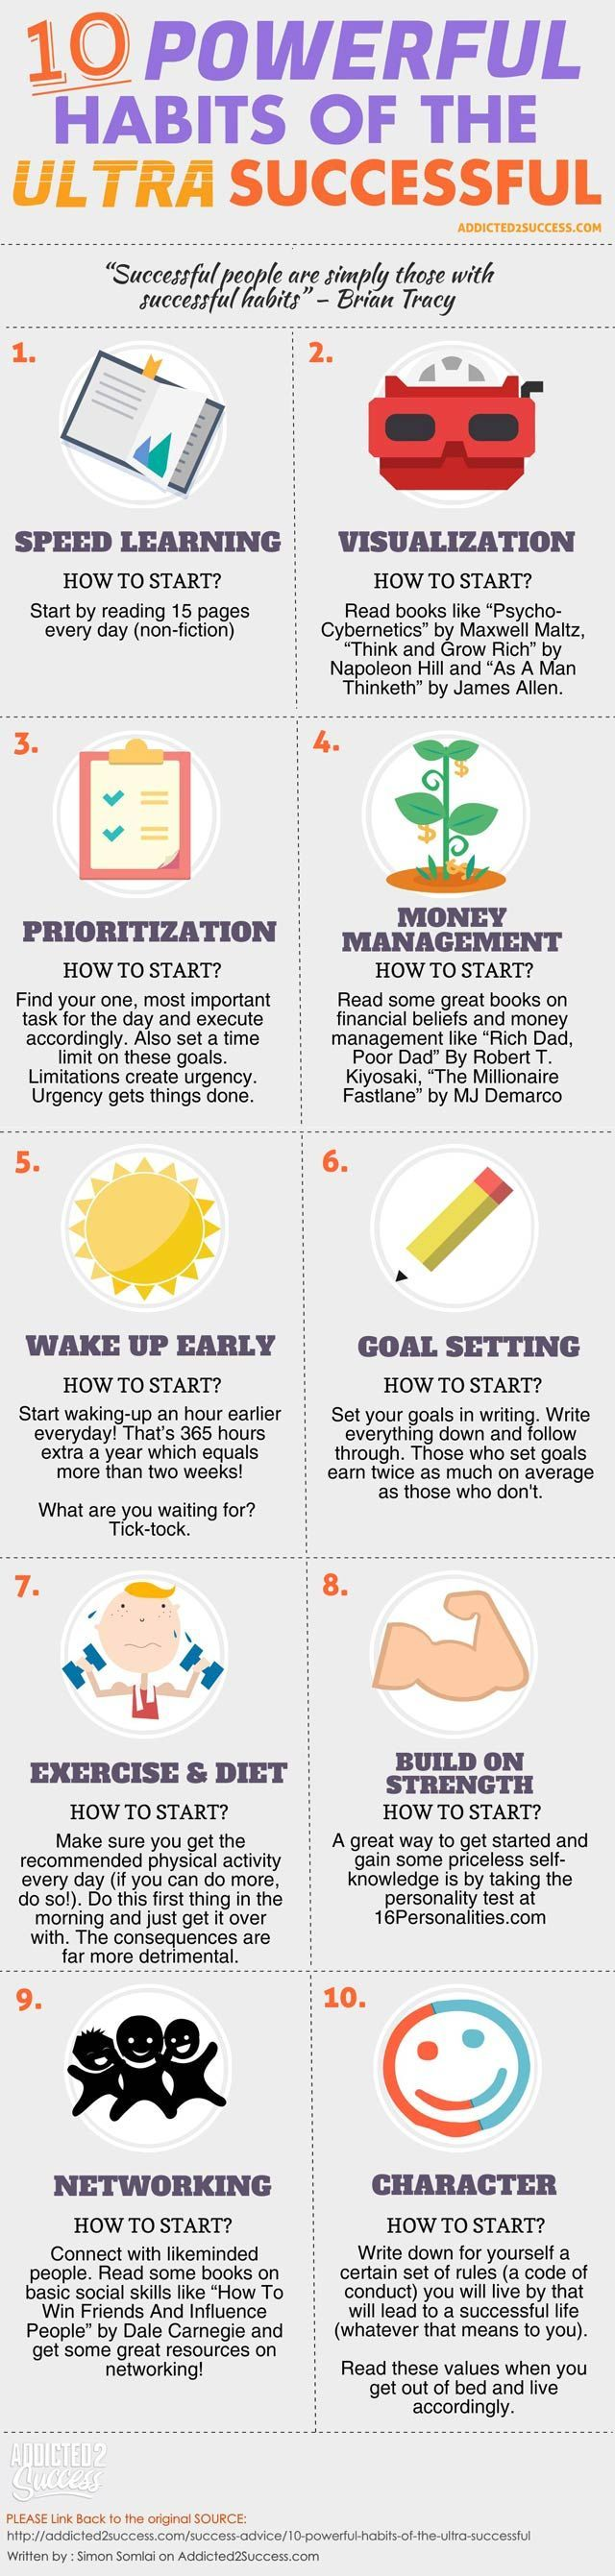 10 Powerful Habits of Ultra Successful People http://www.lifehack.org/articles/productivity.via addicted2success.com)